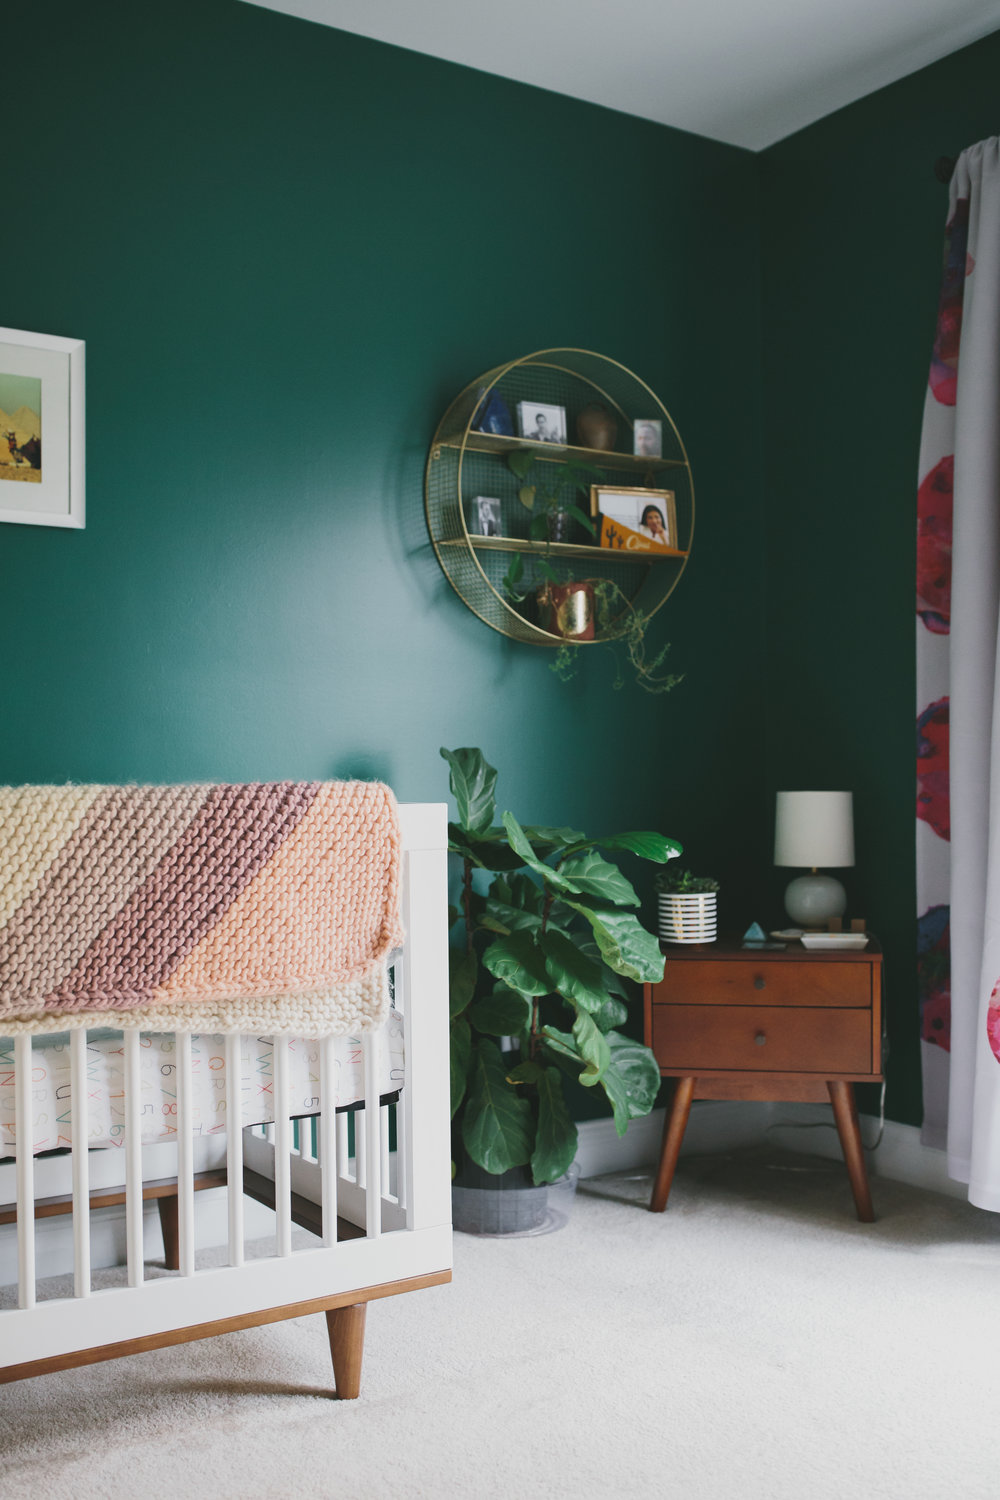 midcentury modern nursery | newborn photographer | Durham, NC | Merritt Chesson Photography